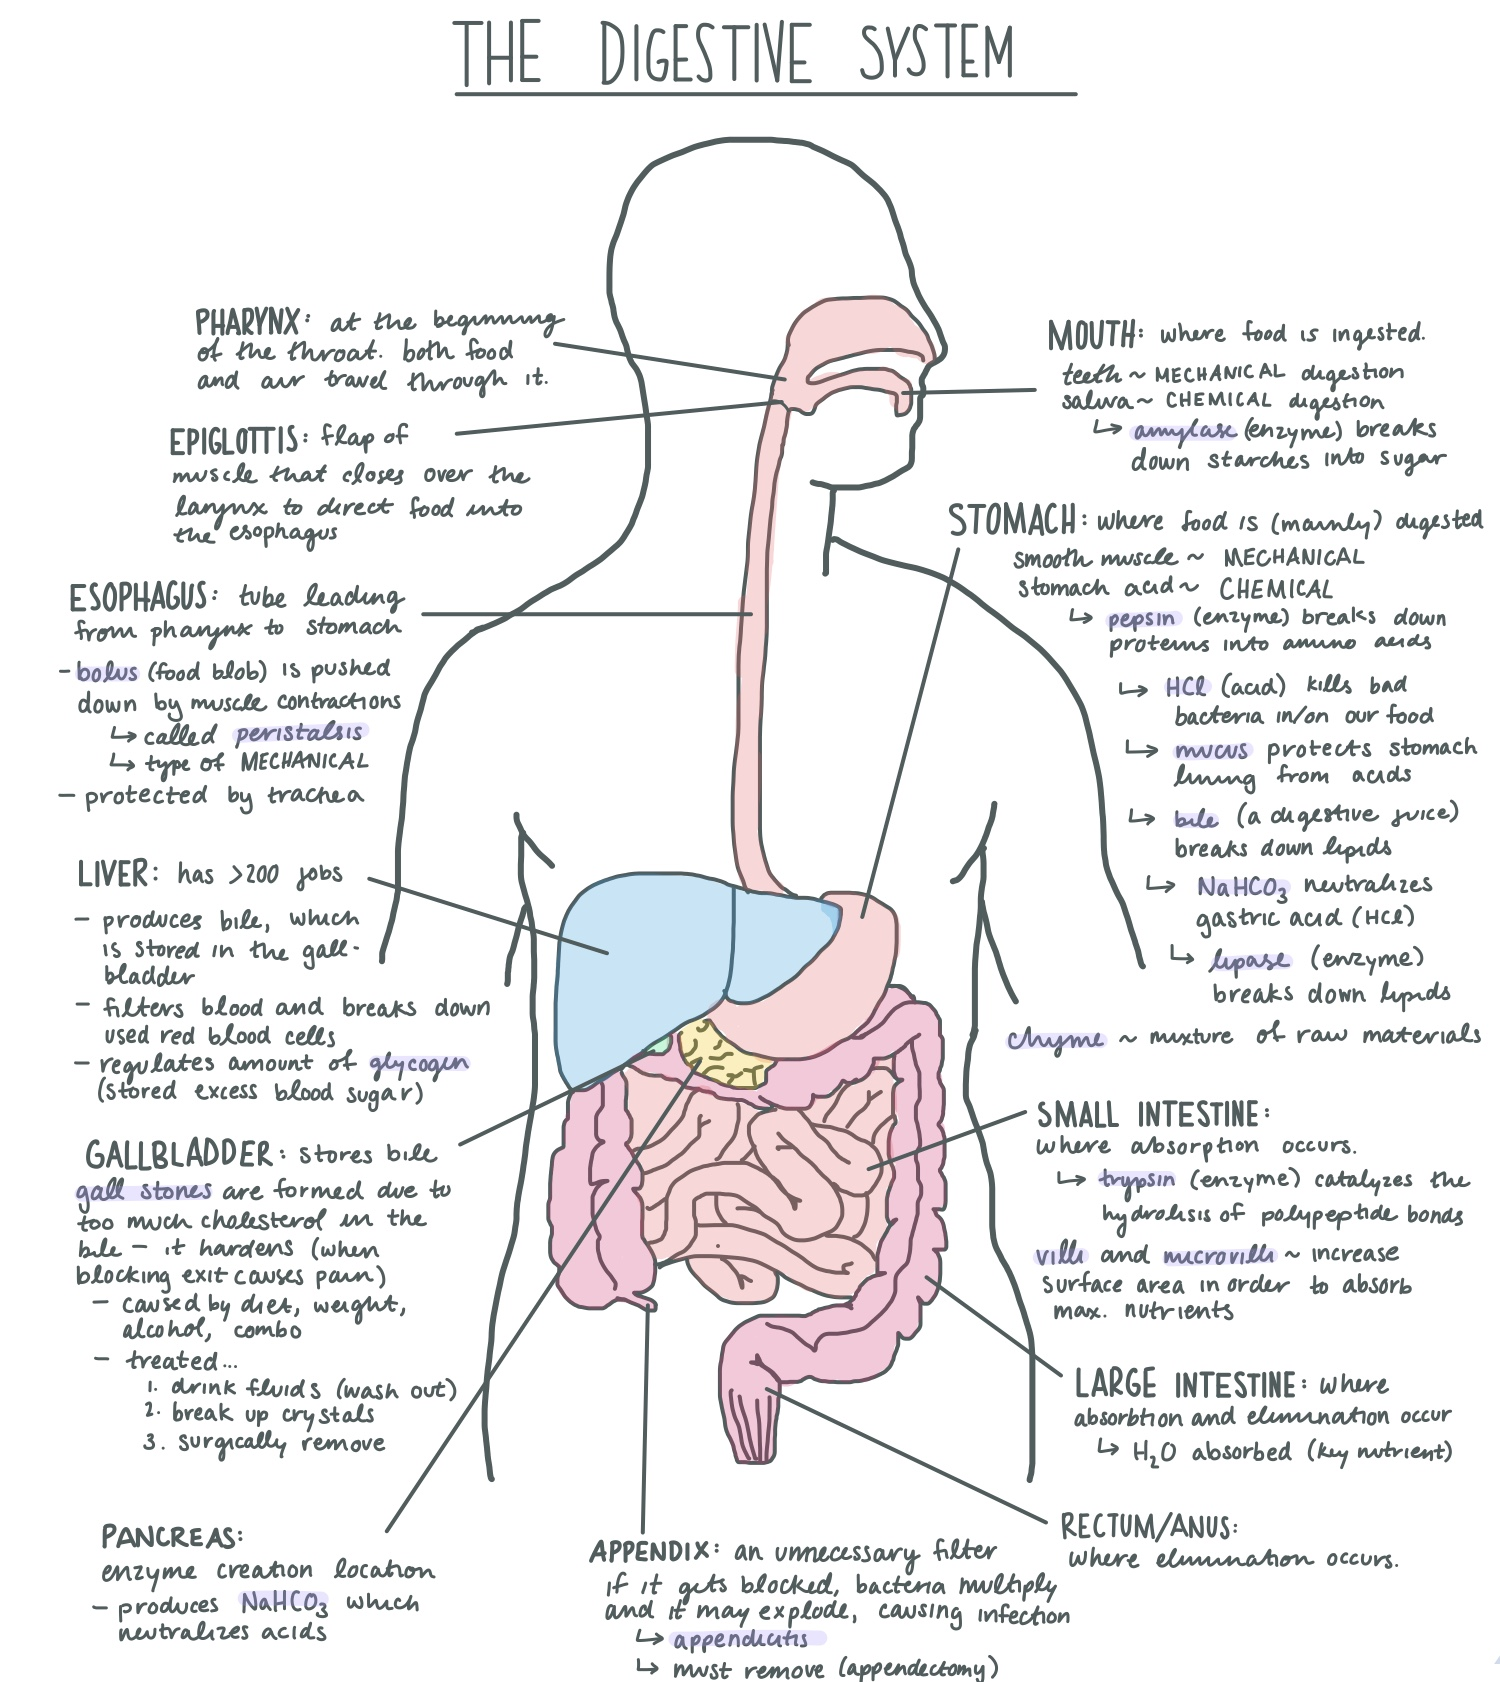 File:Digestive System Diagram.jpg - Wikimedia Commons